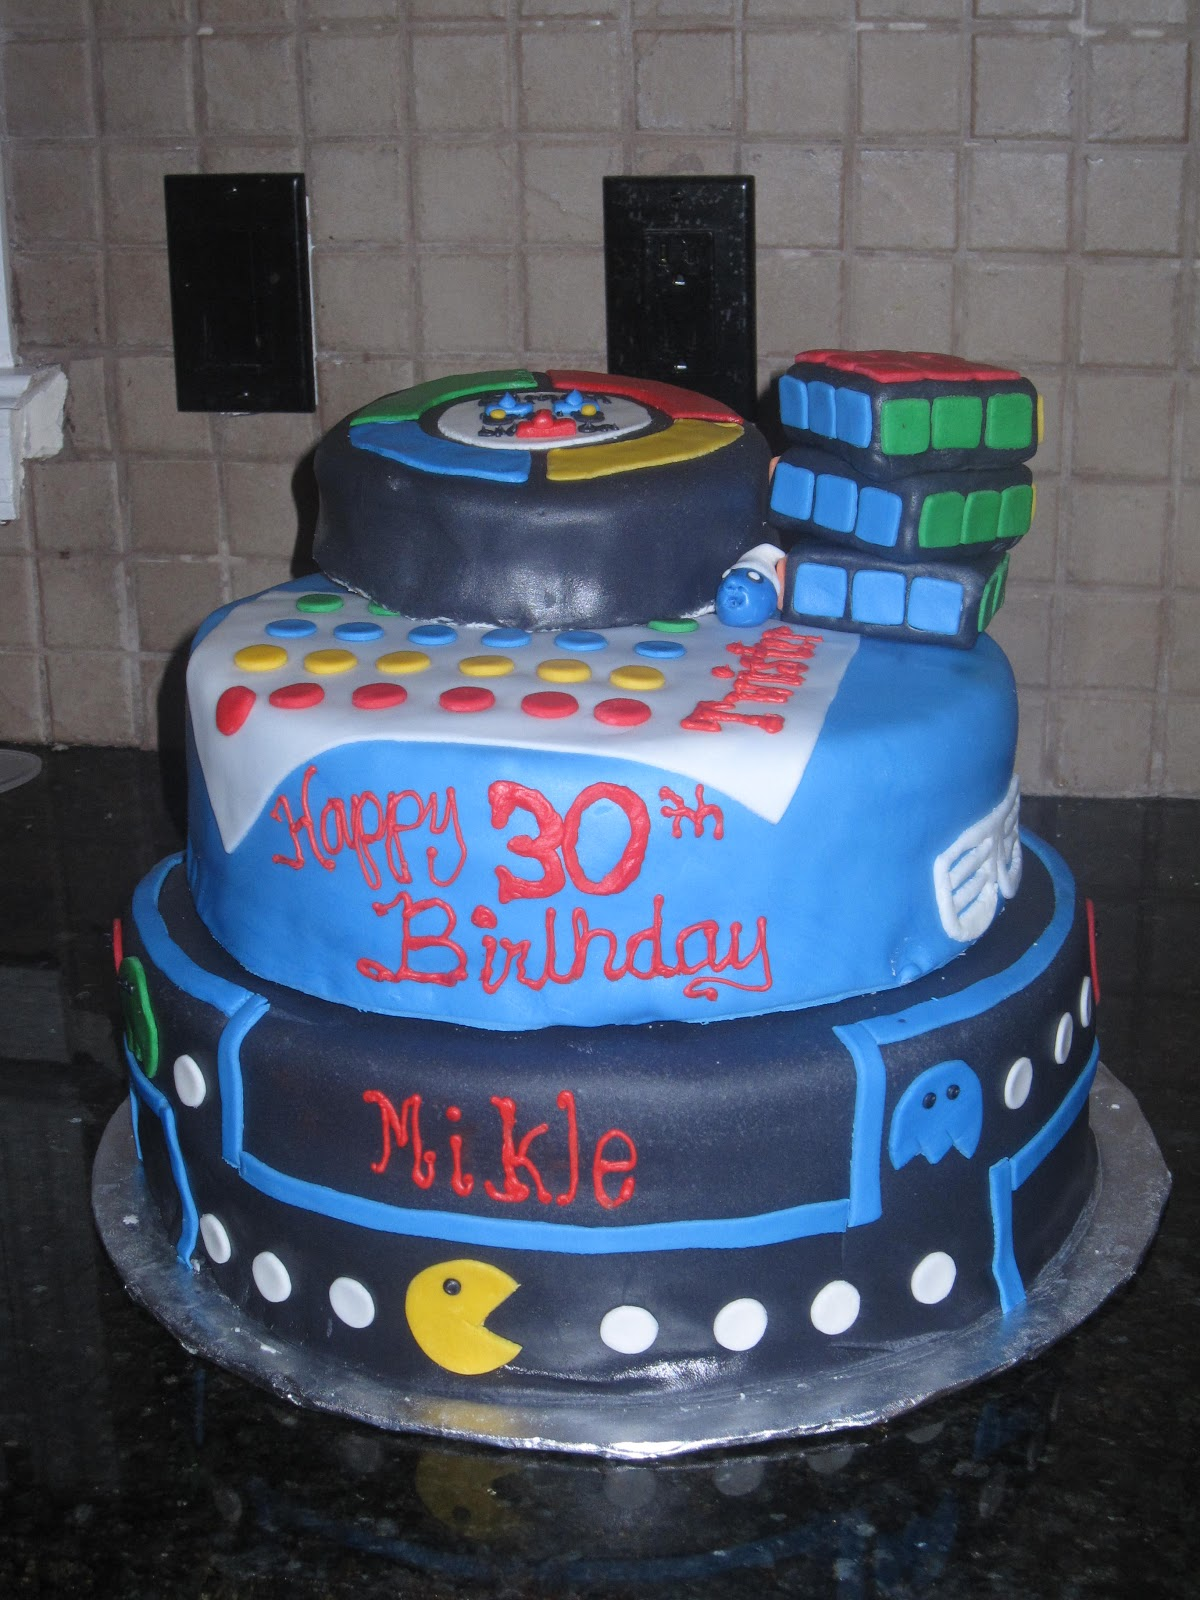 Heathers Cake Cake Sweet 80s 80s Themed Birthday Cake For Mikle